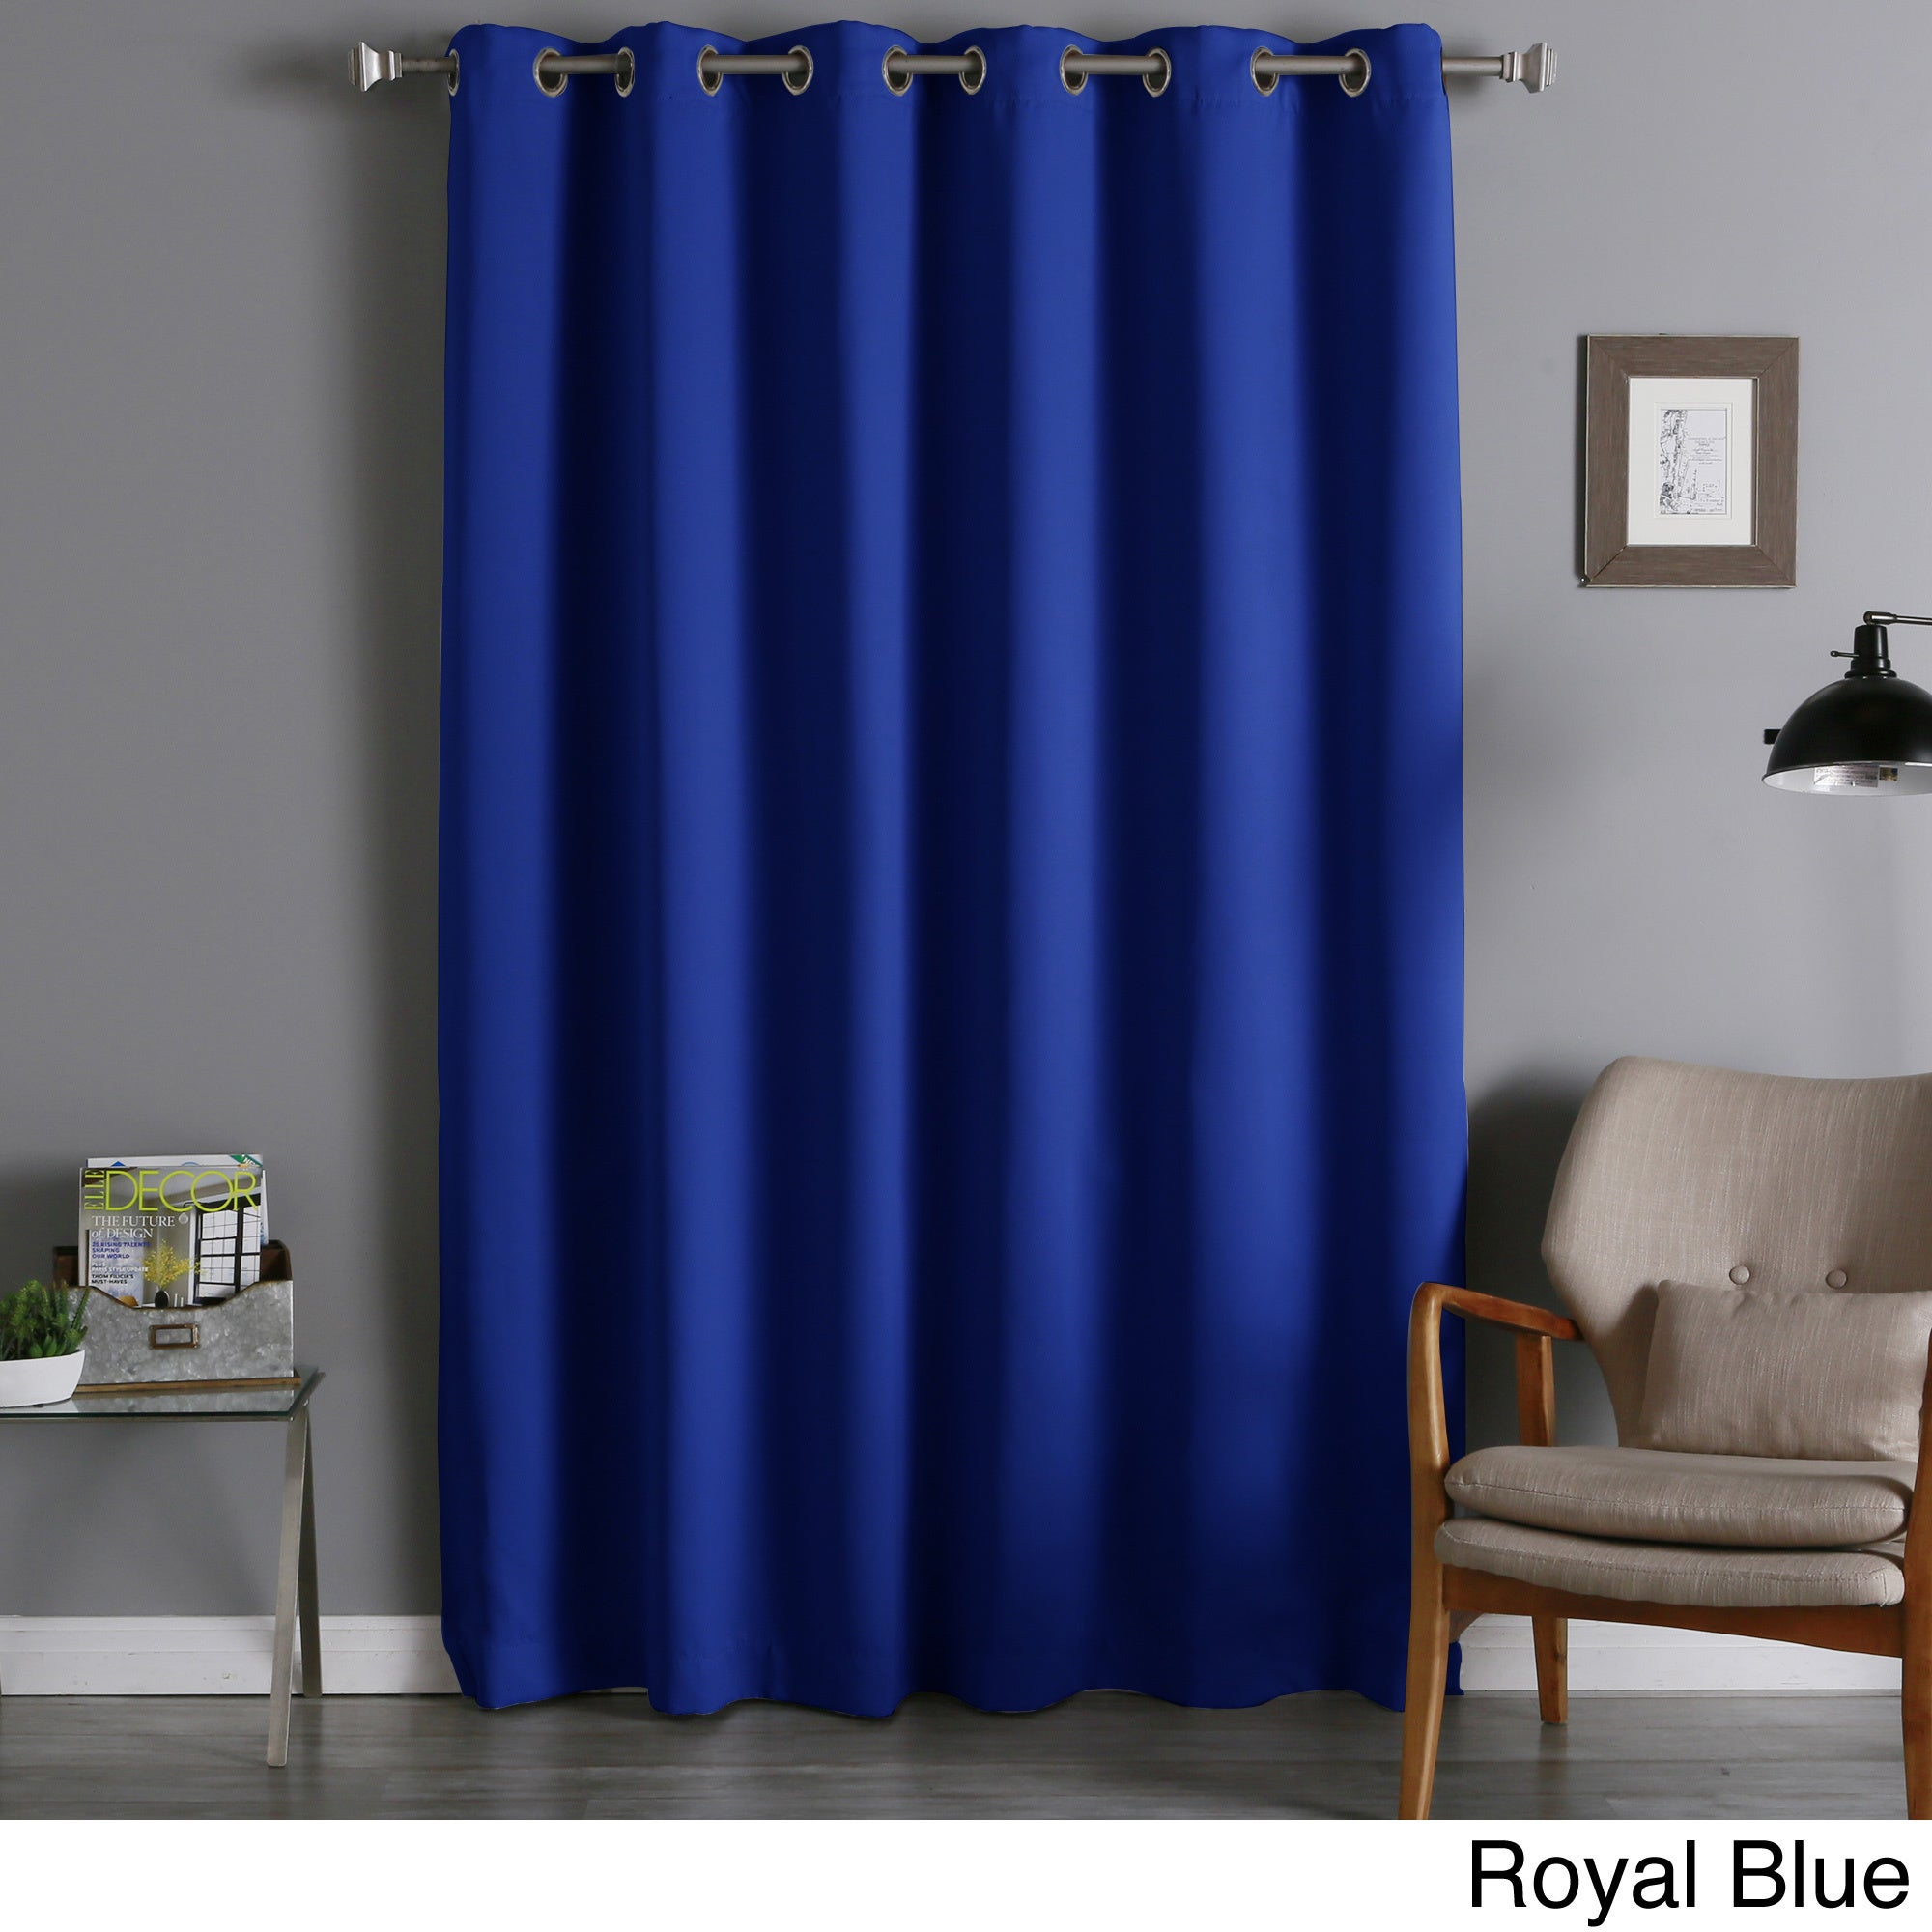 Aurora Home Thermal Insulated 96 Inch Long X 80 Inch Wide Blackout